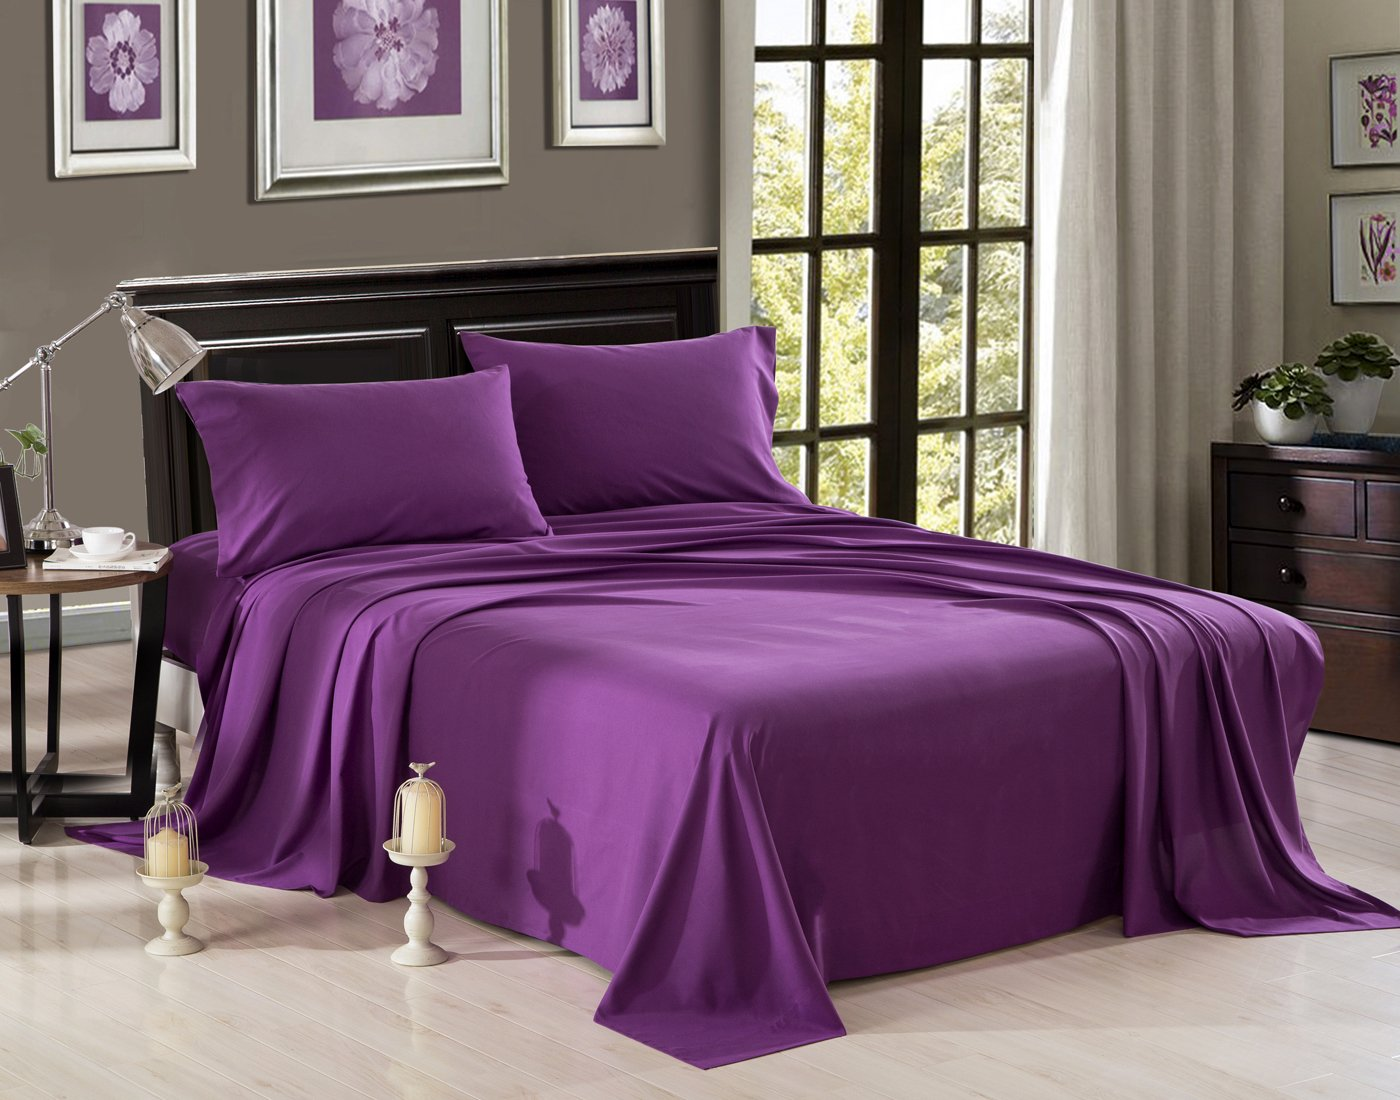 Honeymoon 1800 Brushed Microfiber Bed Sheet Set, Ultra Soft, Full - Purple